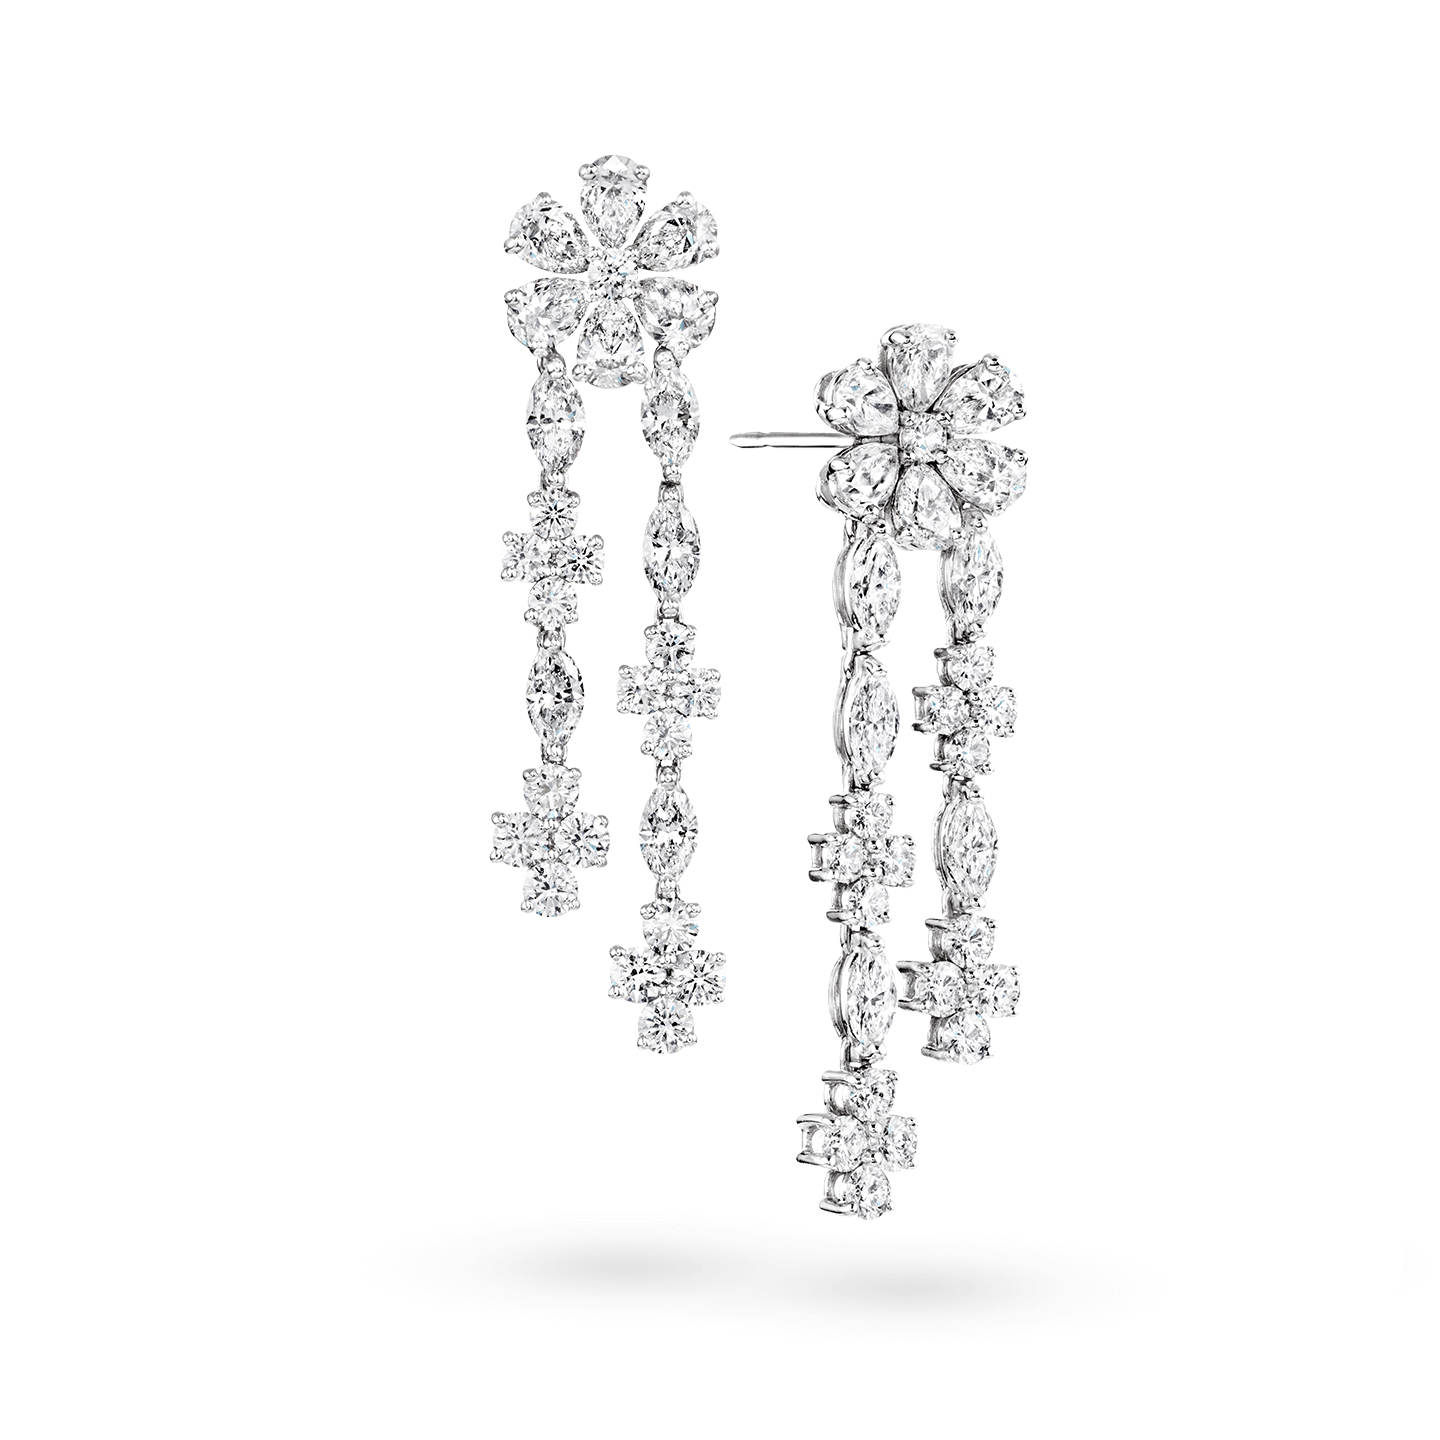 Forget-Me-Not Diamond Drop Earrings, Product Image 2